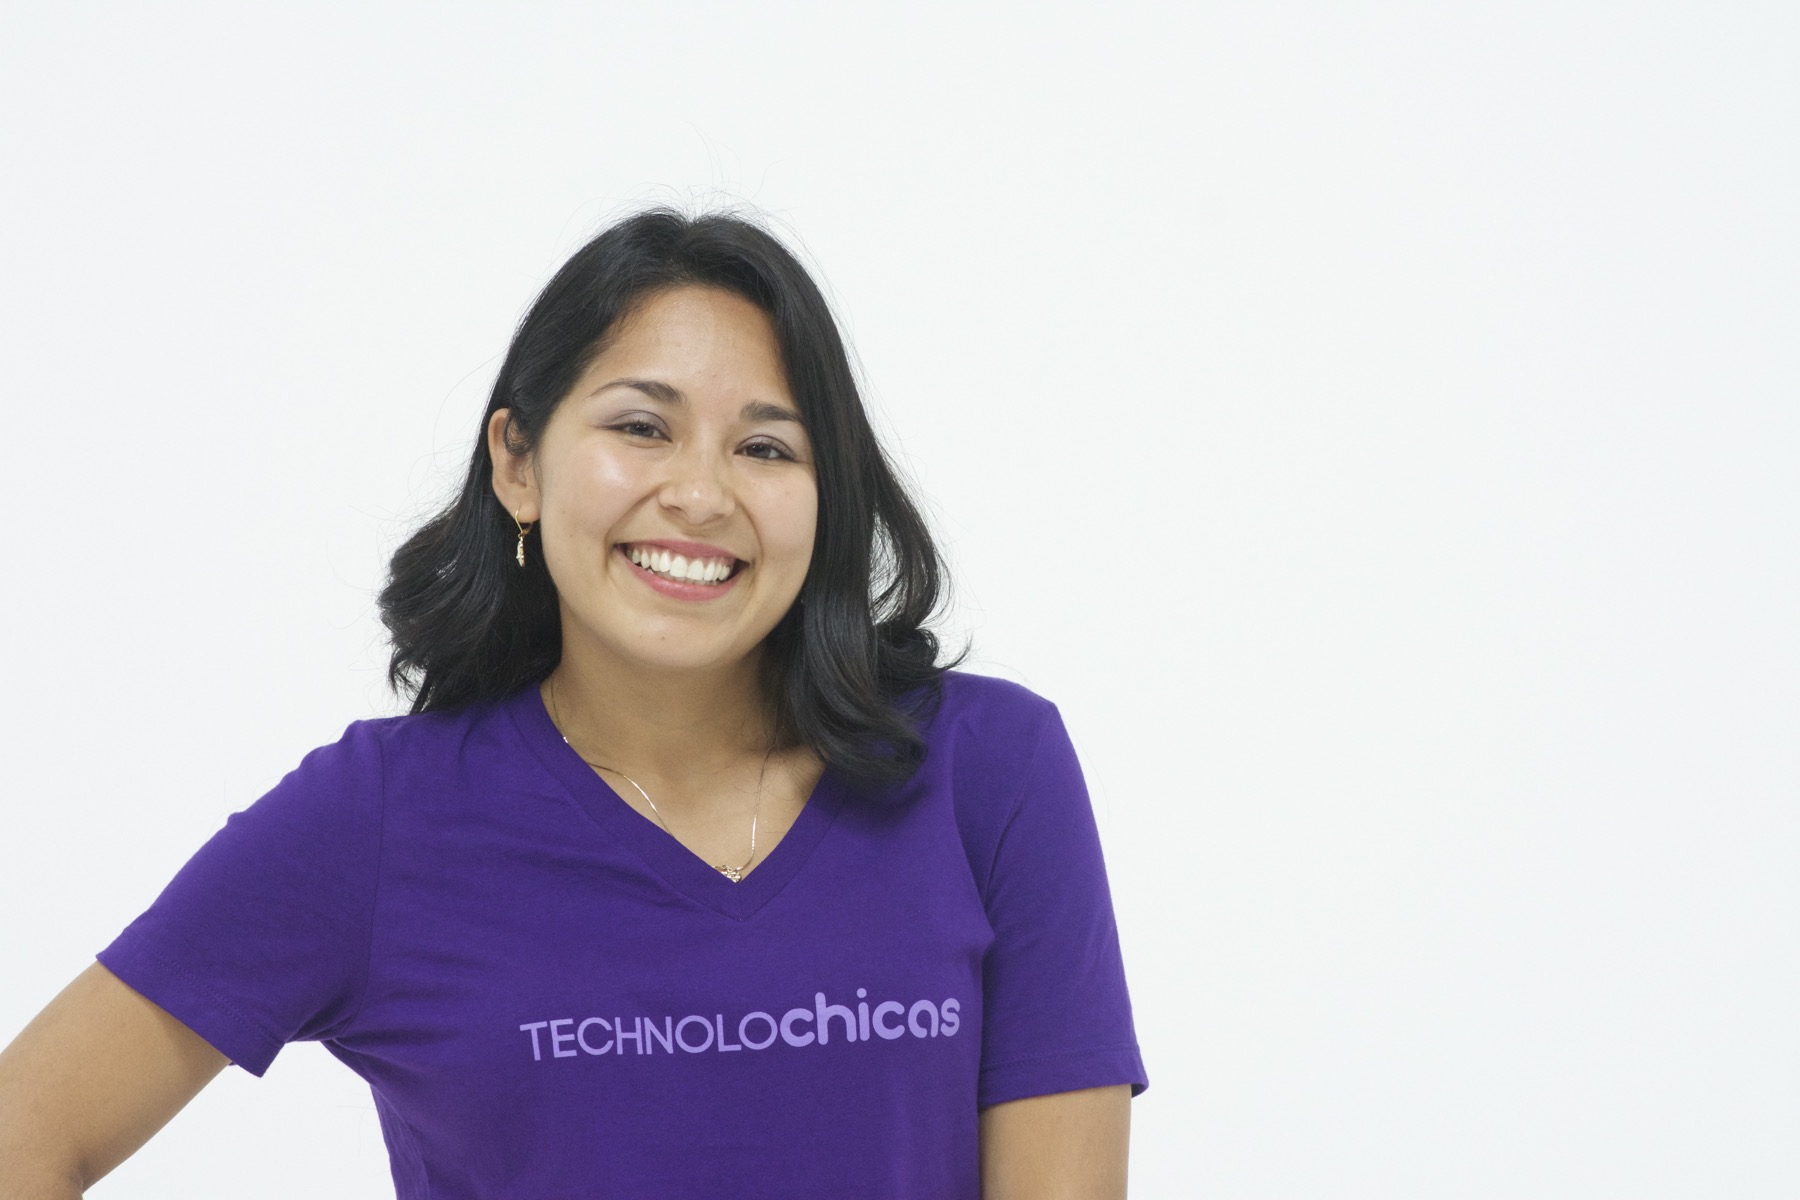 TECHNOLOchicas Raising Awareness of Technological Opportunities for Latinas  CRN